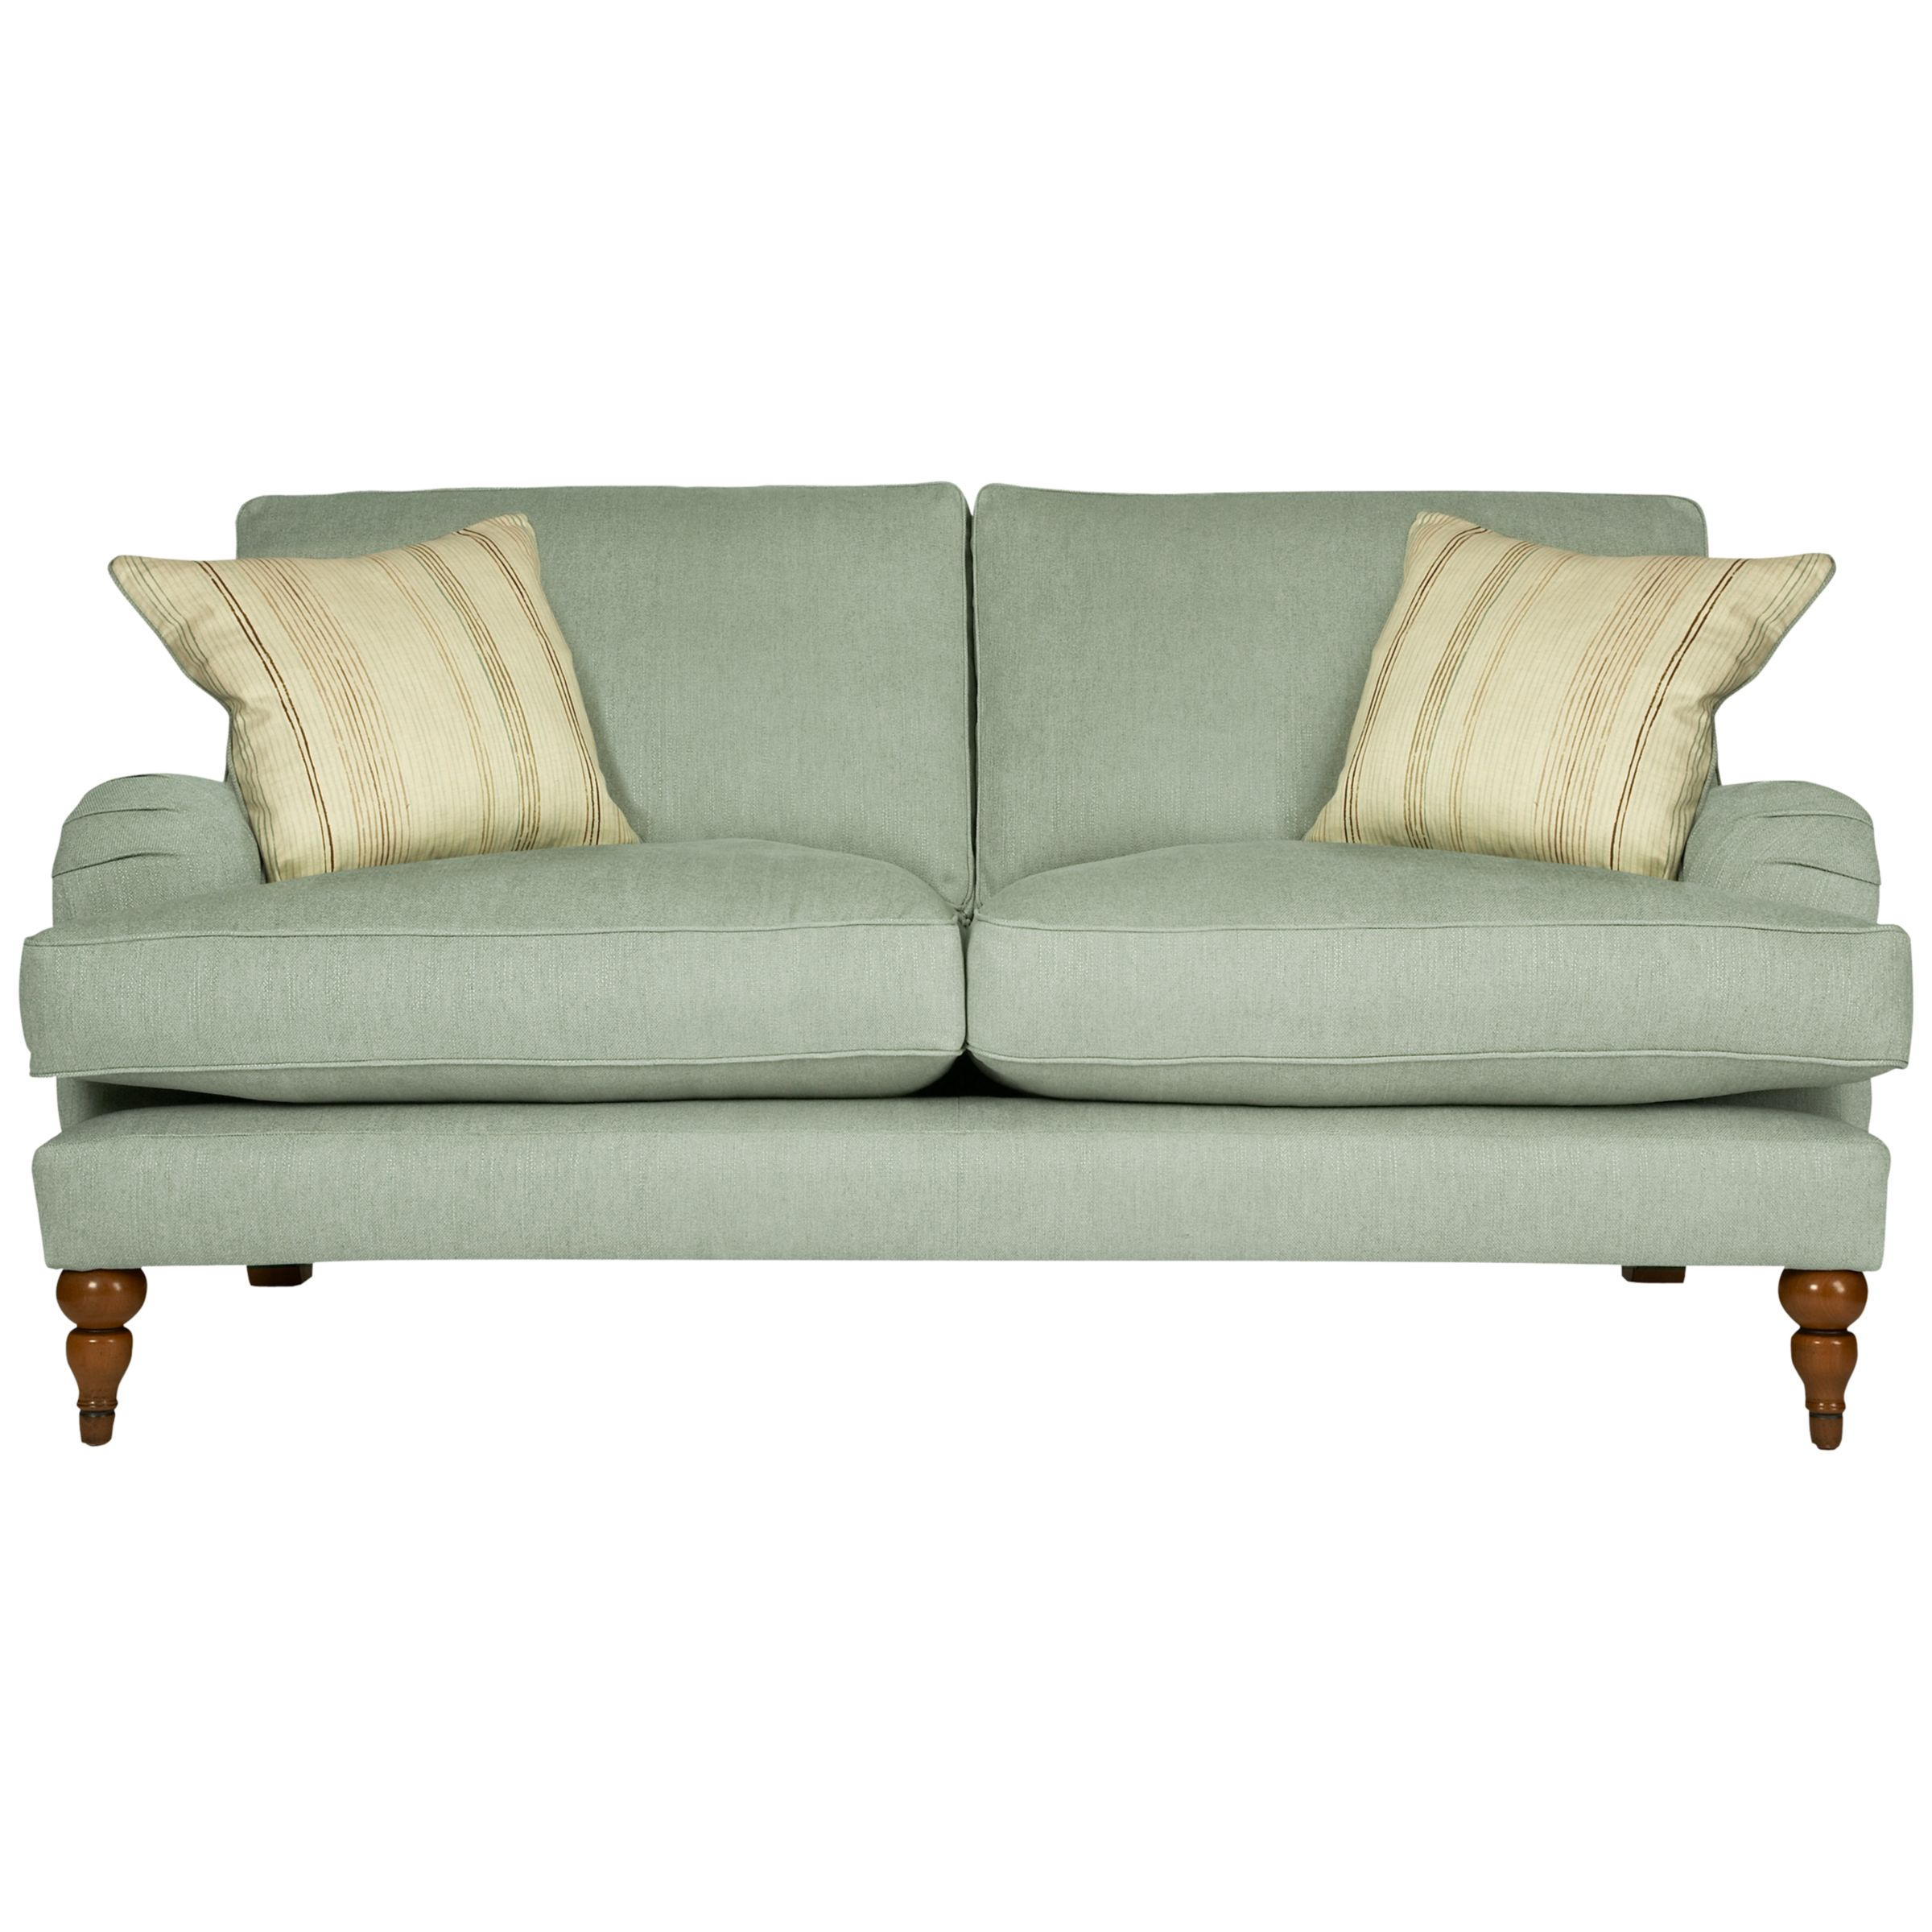 John Lewis Penryn Small Sofa, Aiden Duck Egg